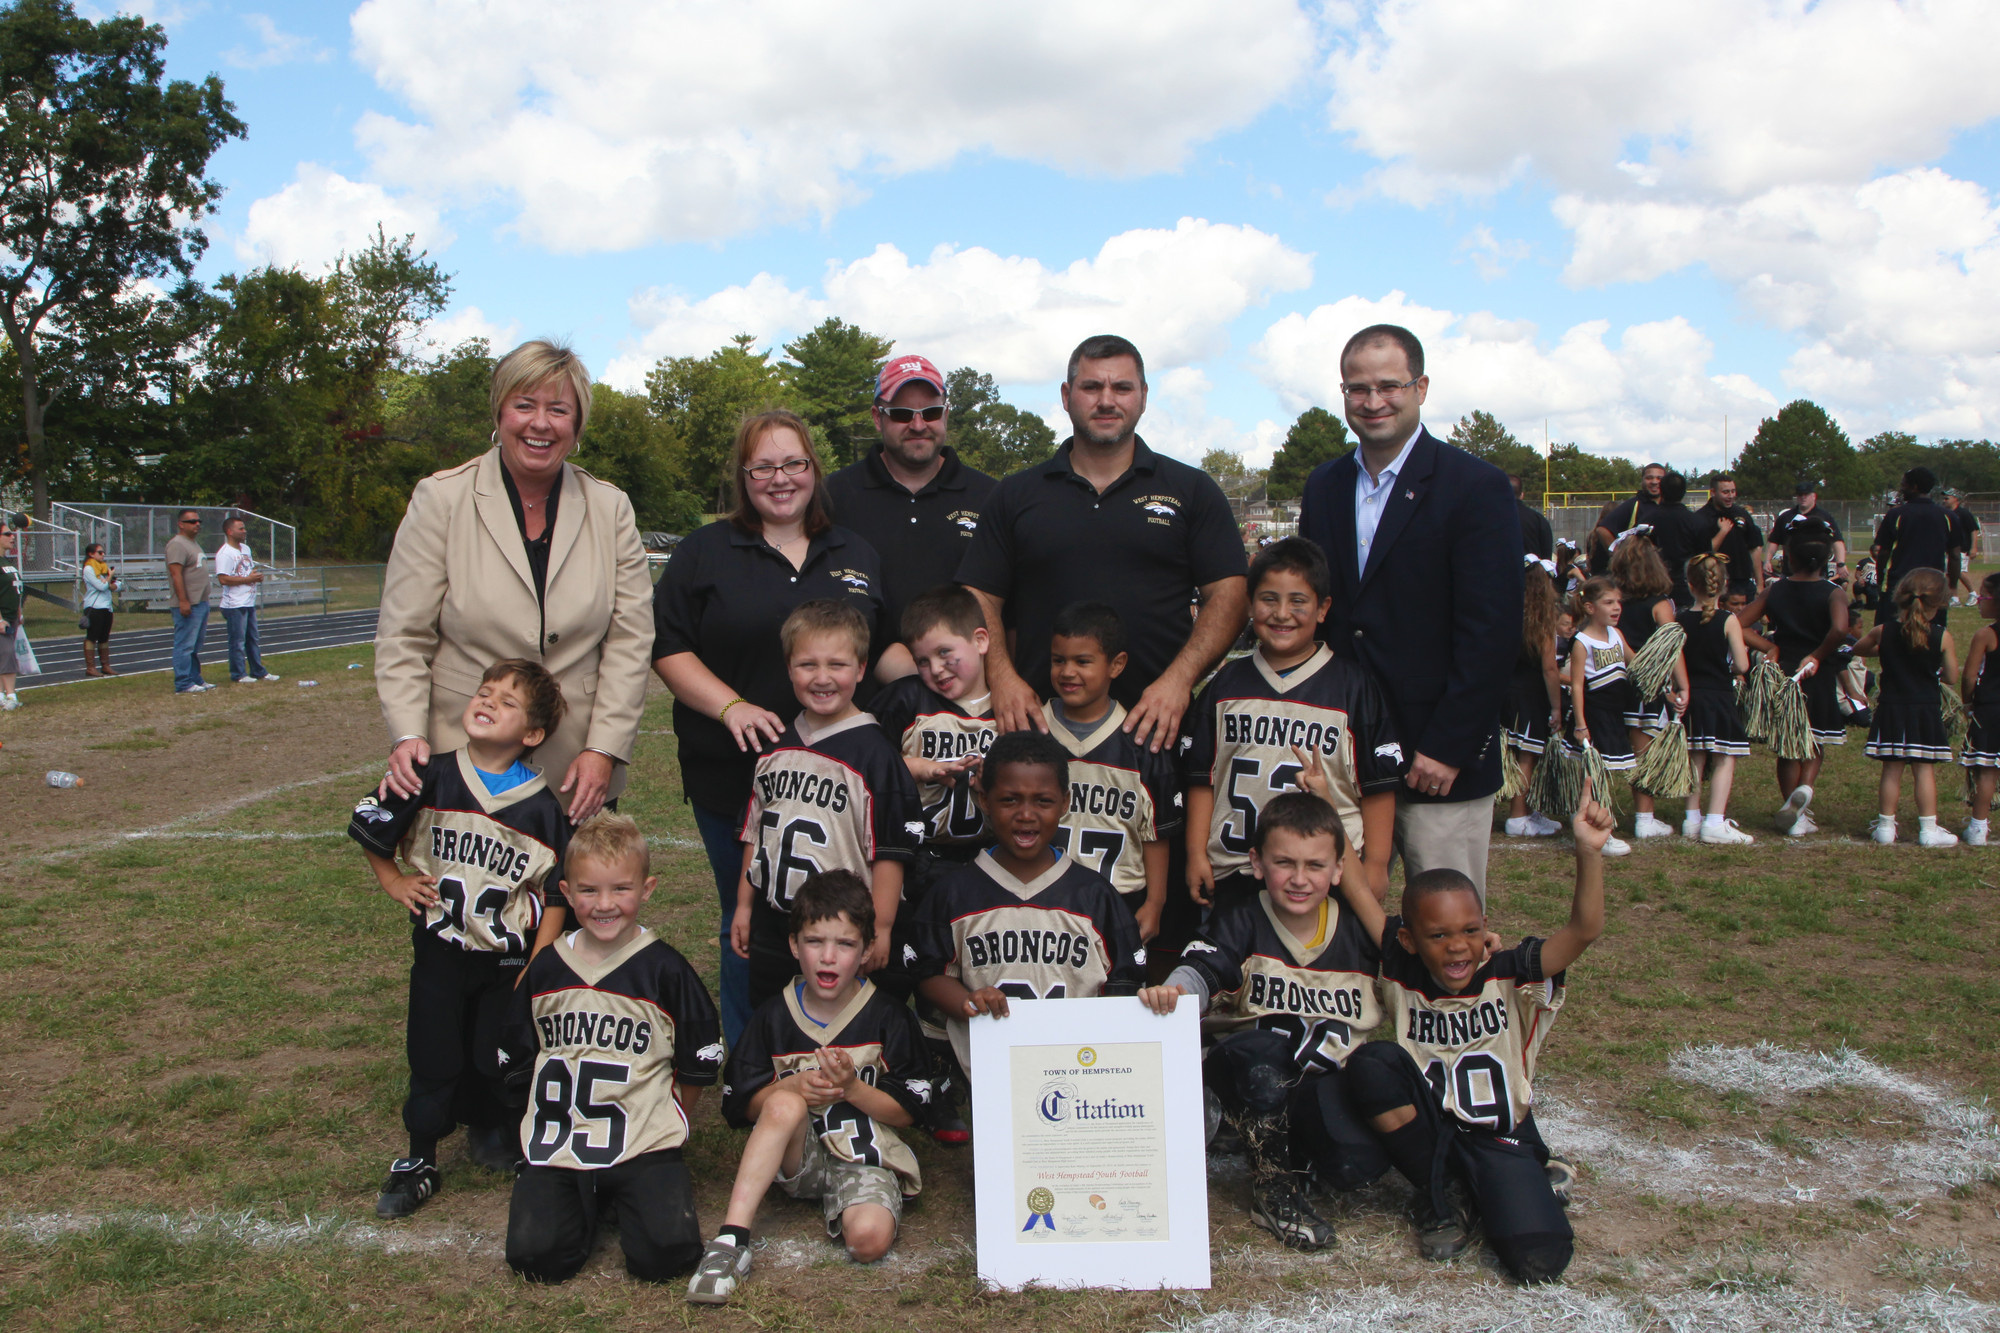 West Hempstead Broncos Peanuts players greeted Town Supervisor Kate Murray, left, New York State Assemblyman Ed Ra, far right, Head Coach Tony and Coaches Rich and Victoria Sharvin of West Hempstead at the 2013 West Hempstead Youth Football Club Opening Day Ceremony.